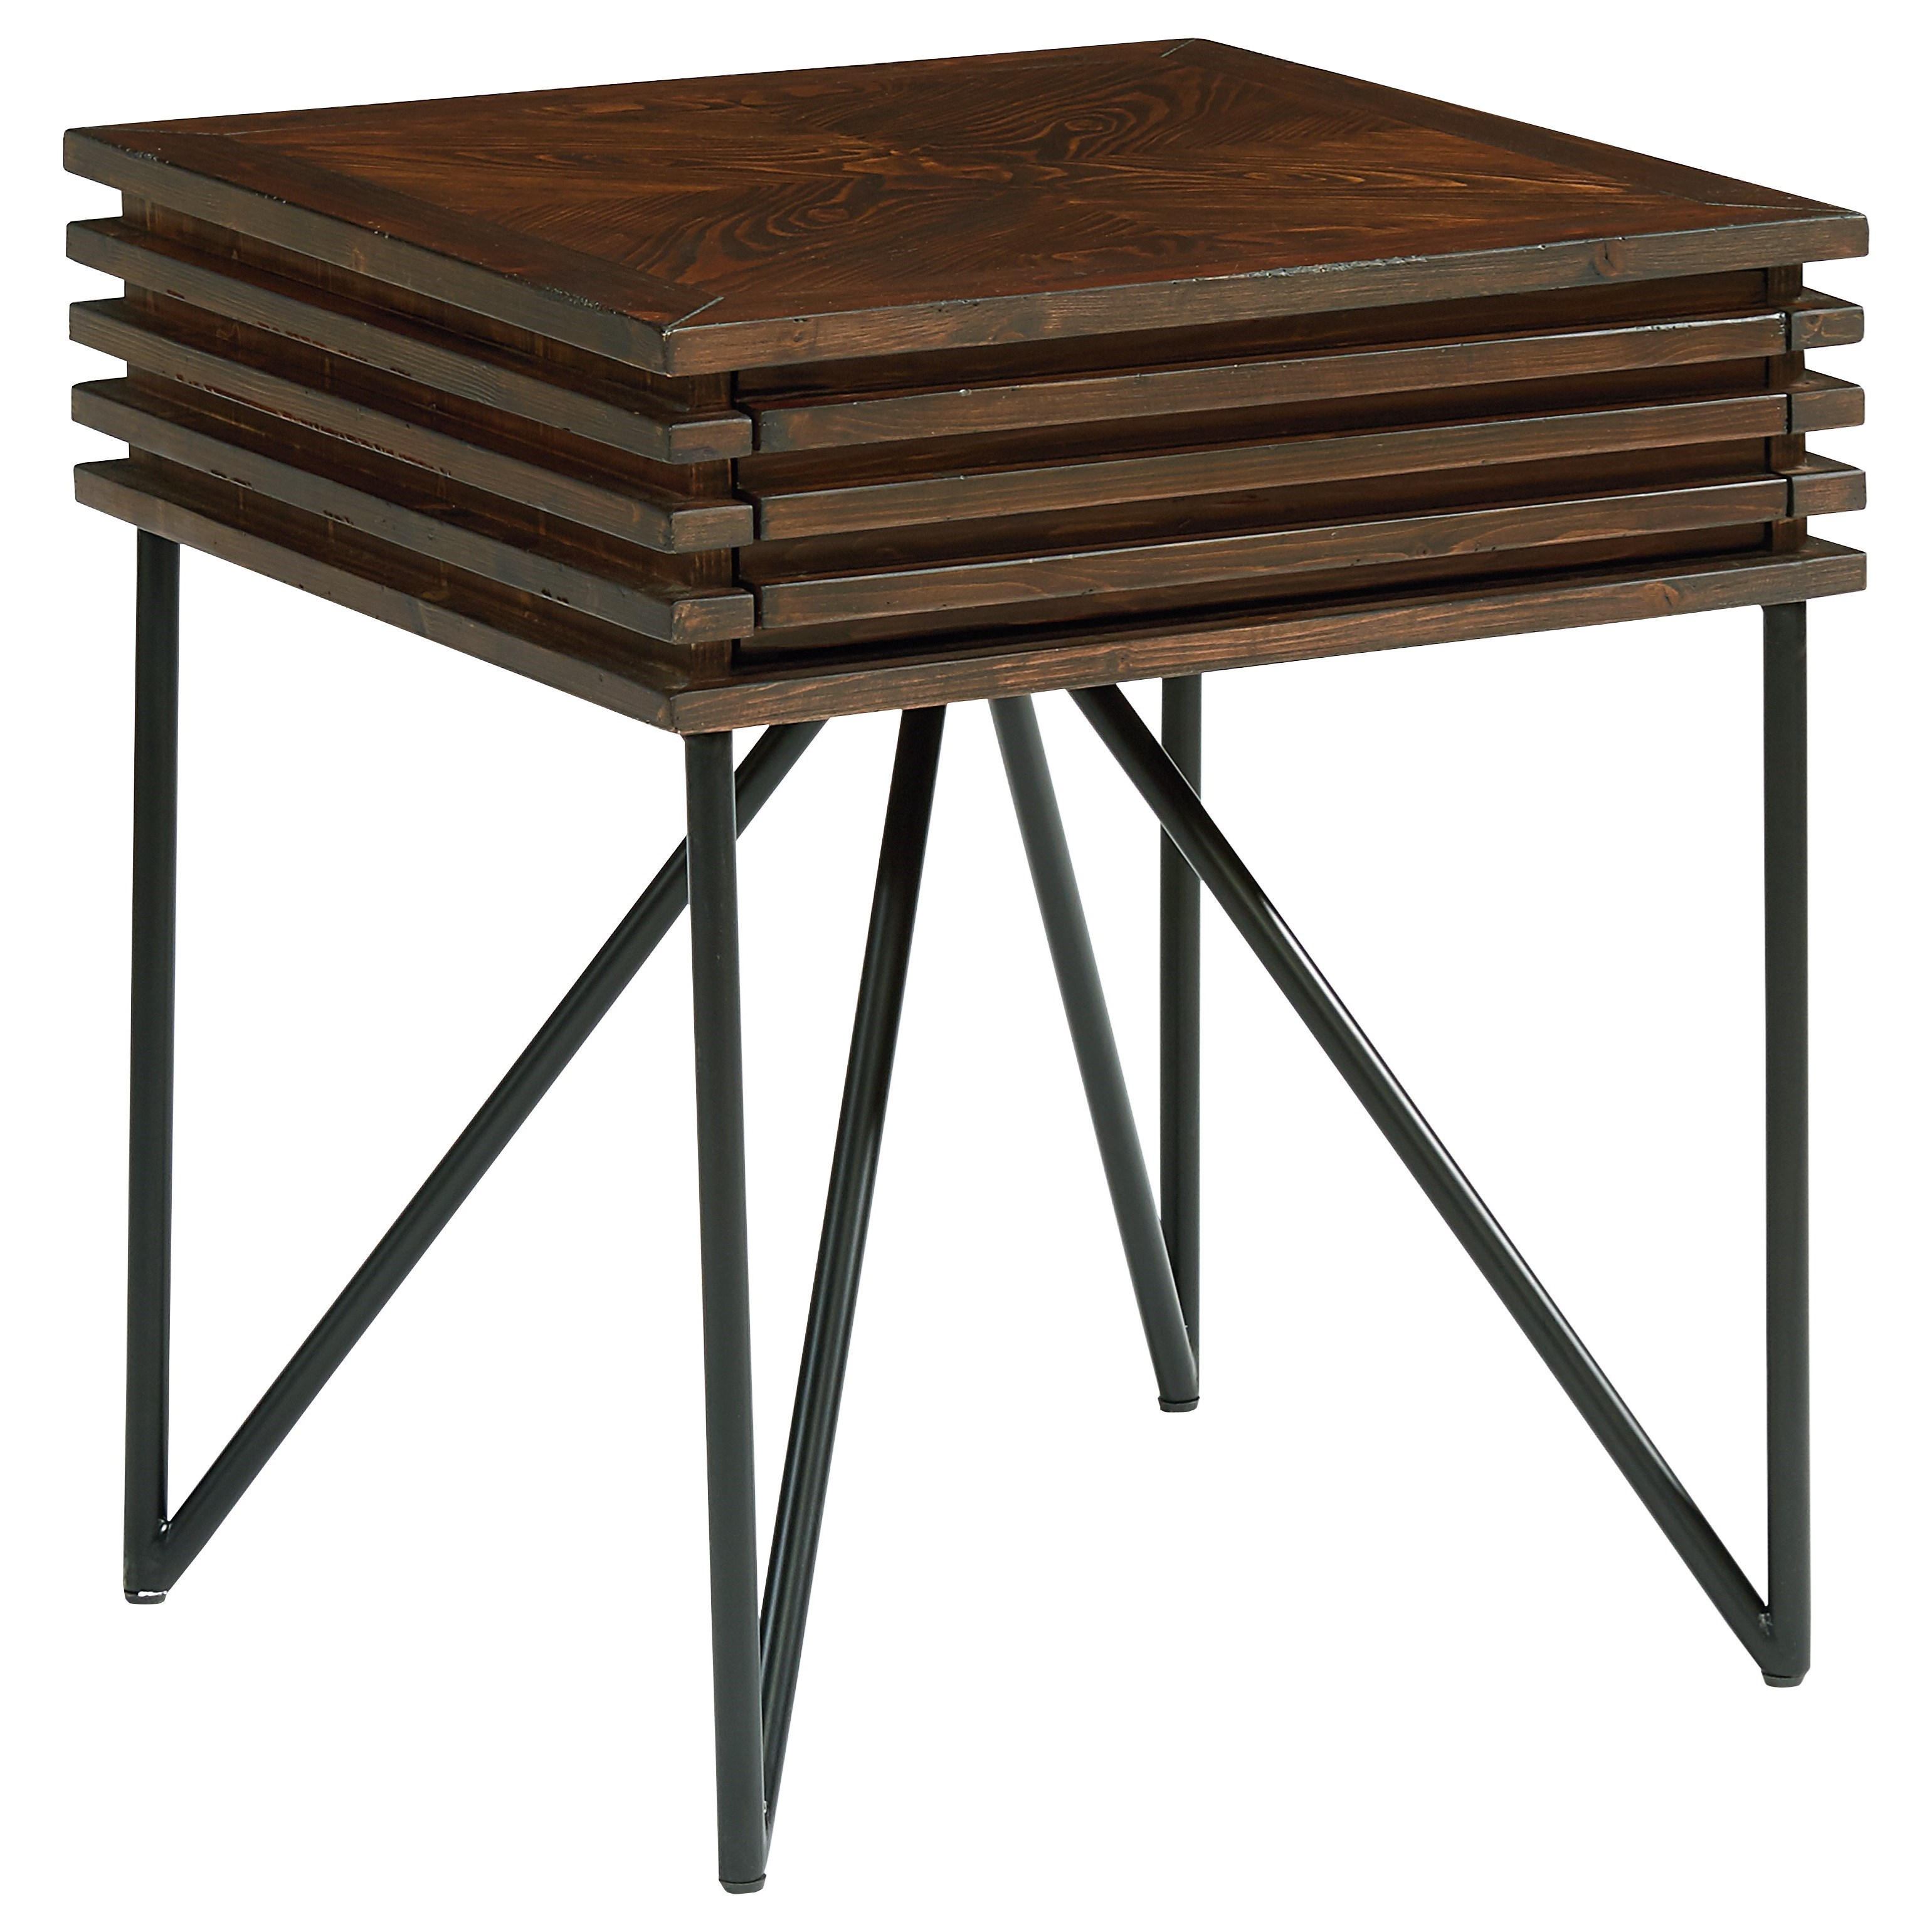 Magnolia Home by Joanna Gaines Boho Stacked Slat Side Table with Drawer - Item Number: 5070202N